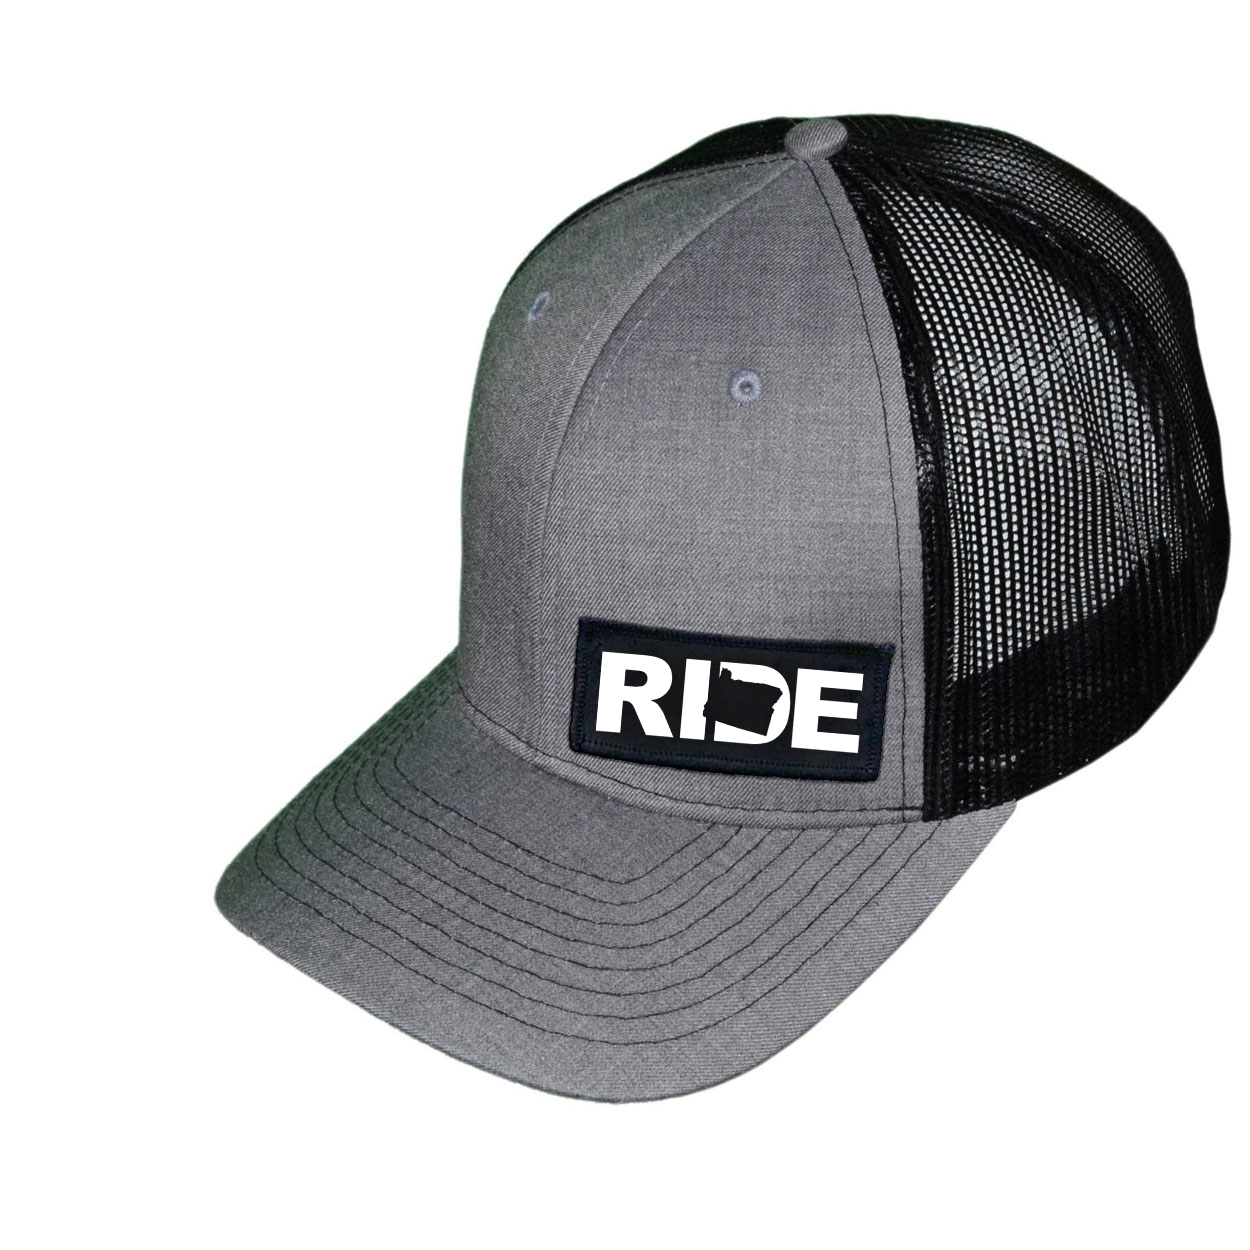 Ride Oregon Night Out Woven Patch Snapback Trucker Hat Heather Gray/Black (White Logo)